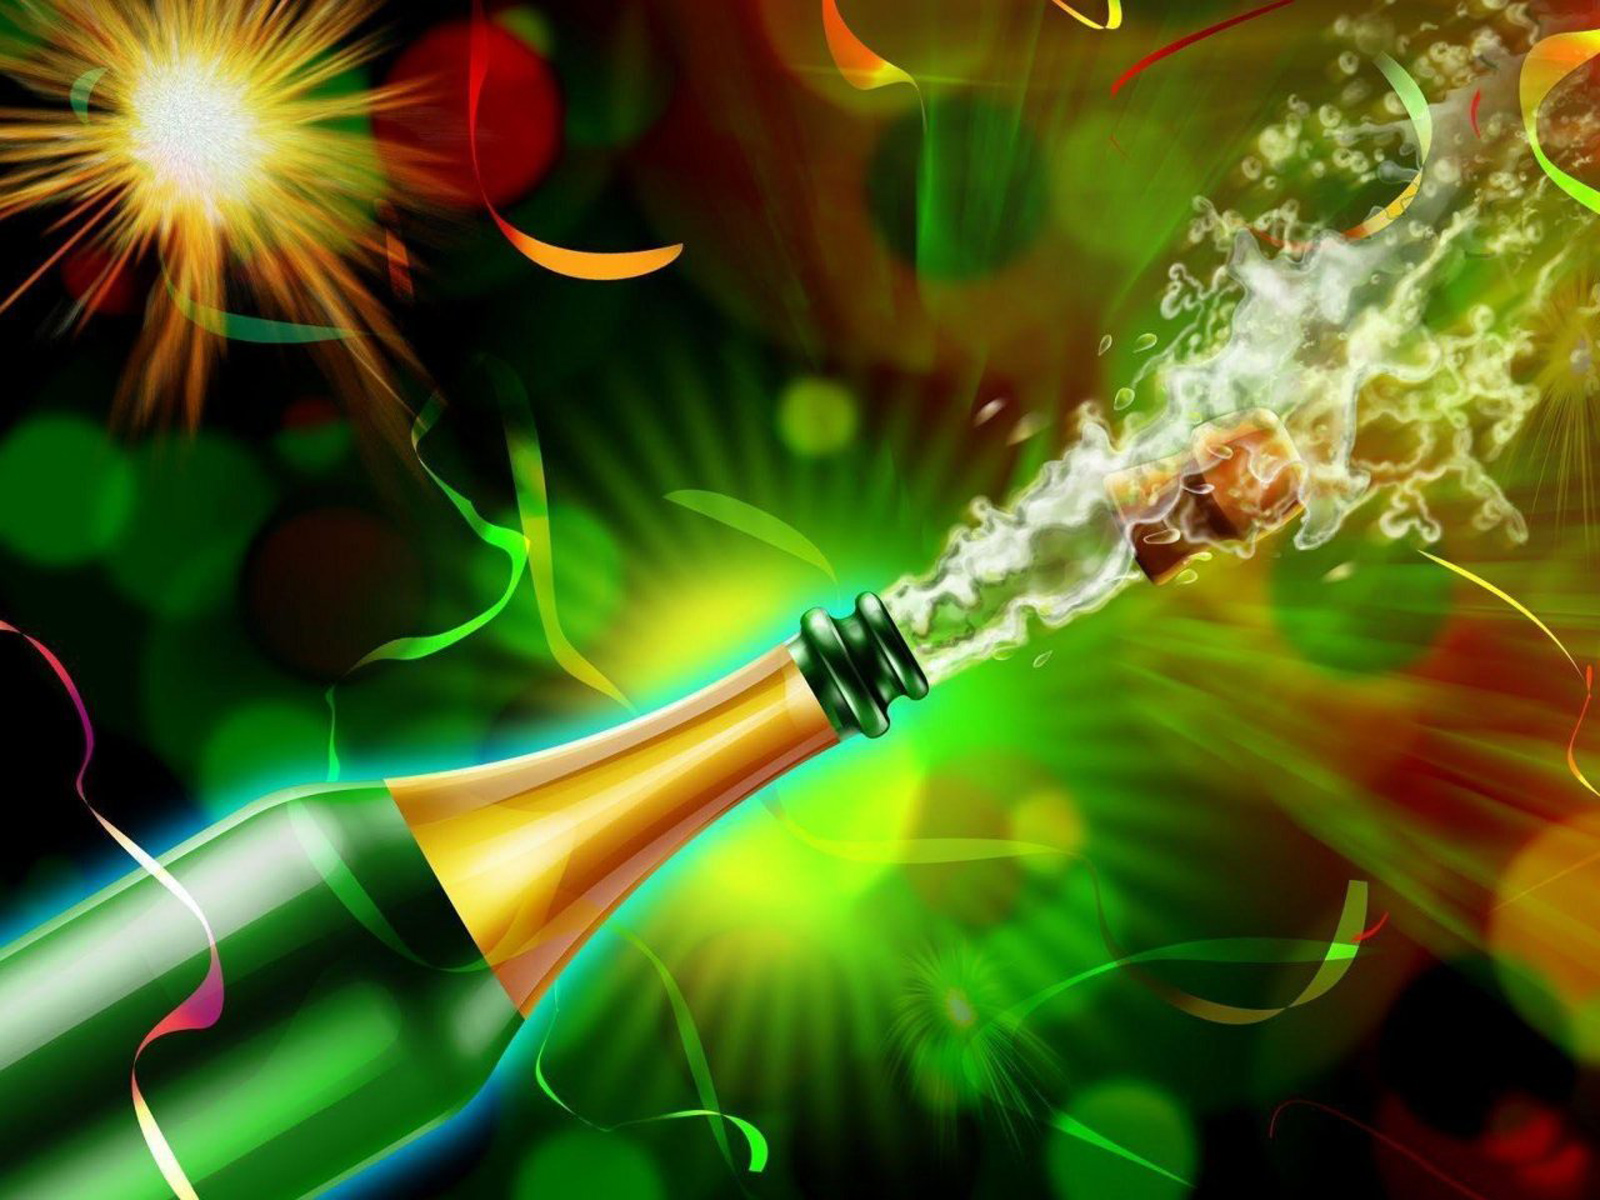 New Years Eve Celebrations computer desktop wallpapers pictures 1600x1200